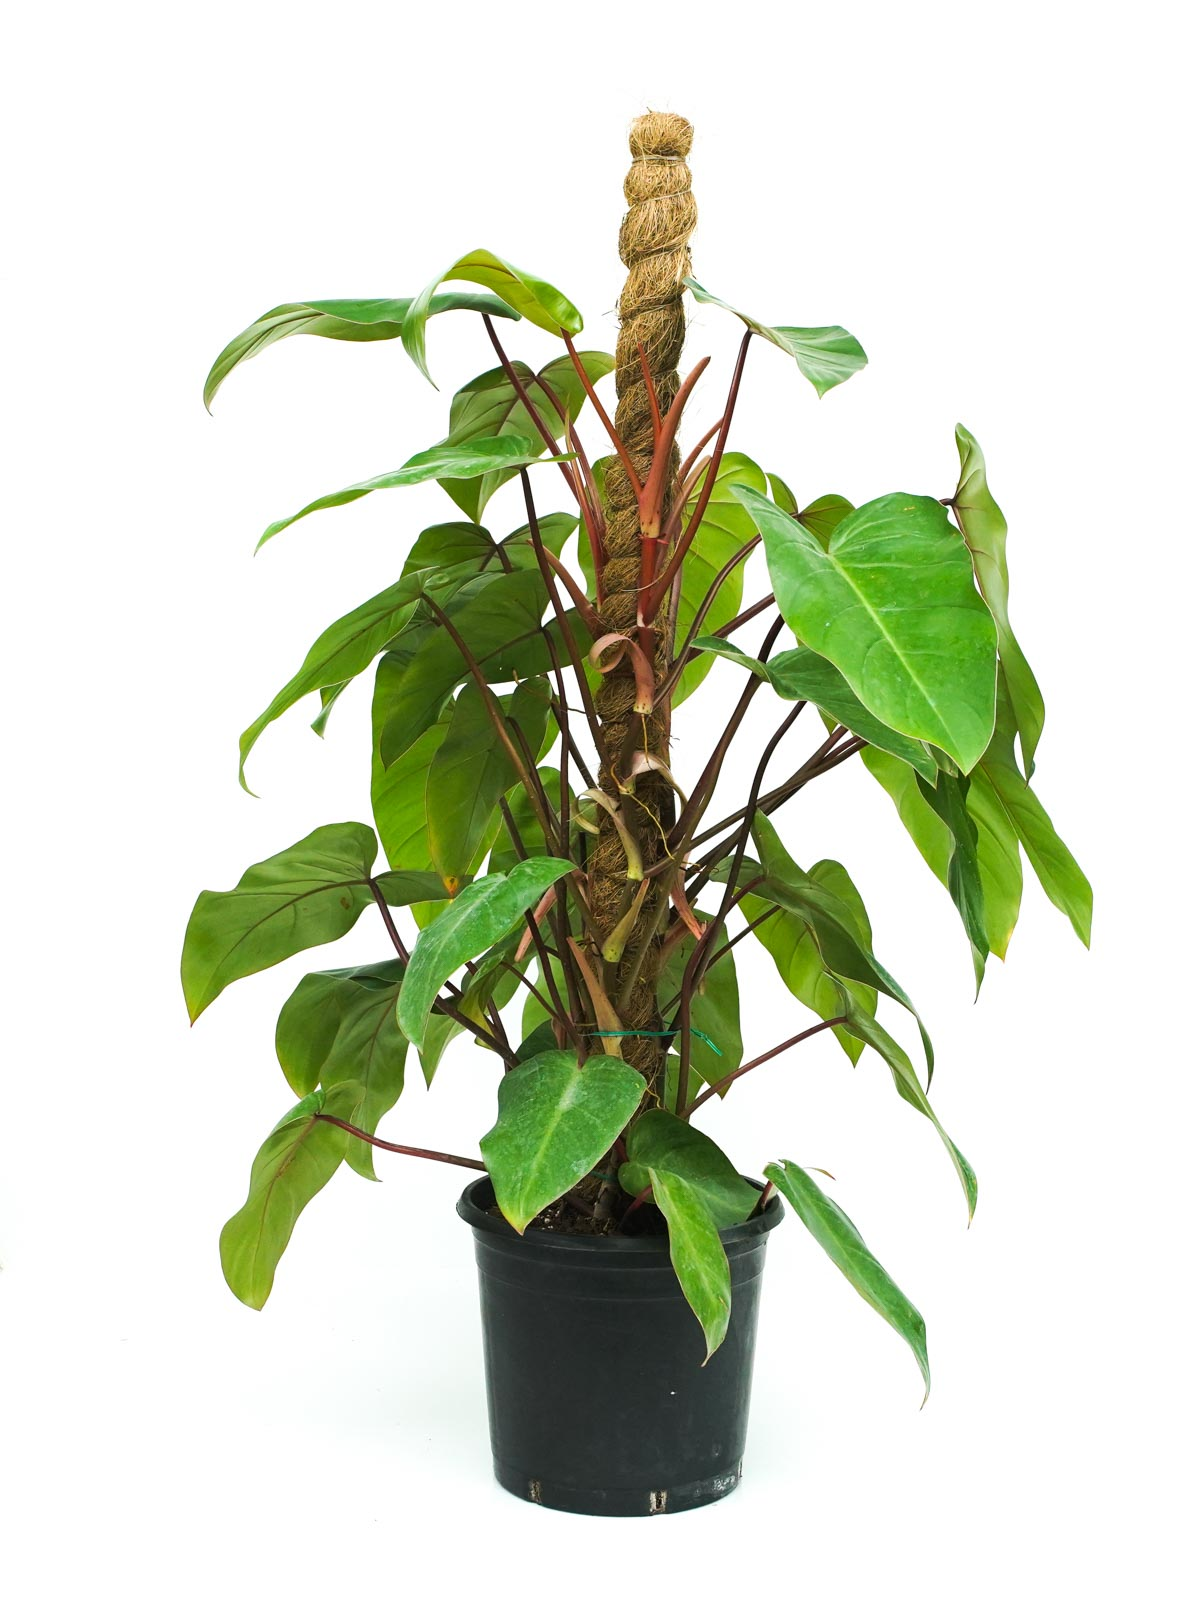 Philodendron Emerald Red Stick 'Indoor Plants'